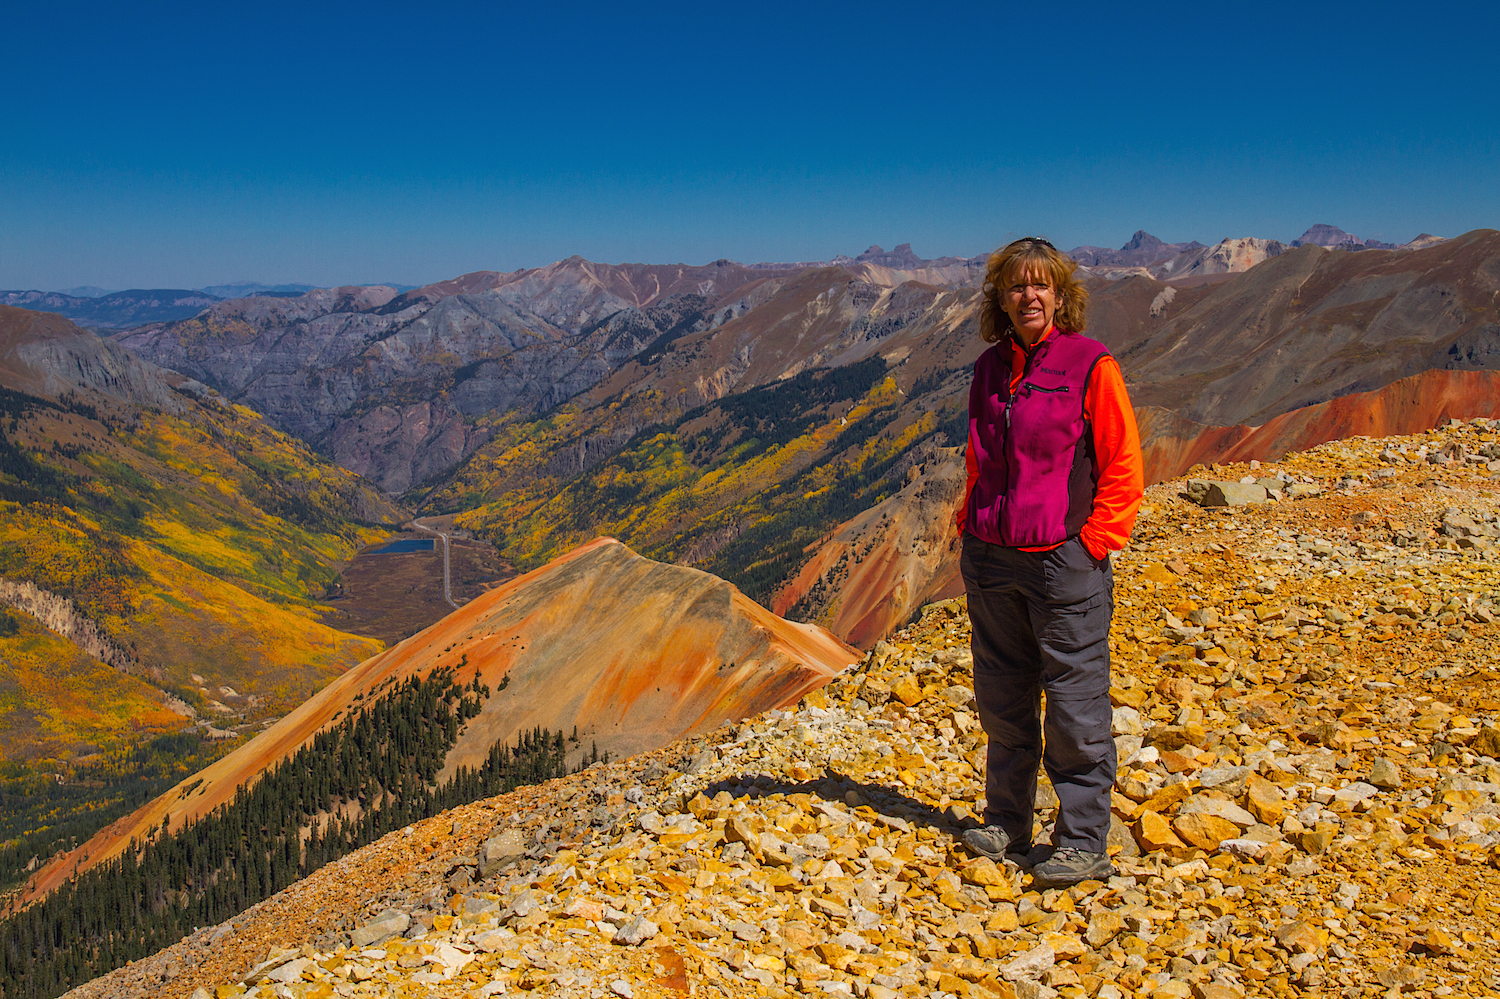 Red Mountain #3, Julie, Image #1470